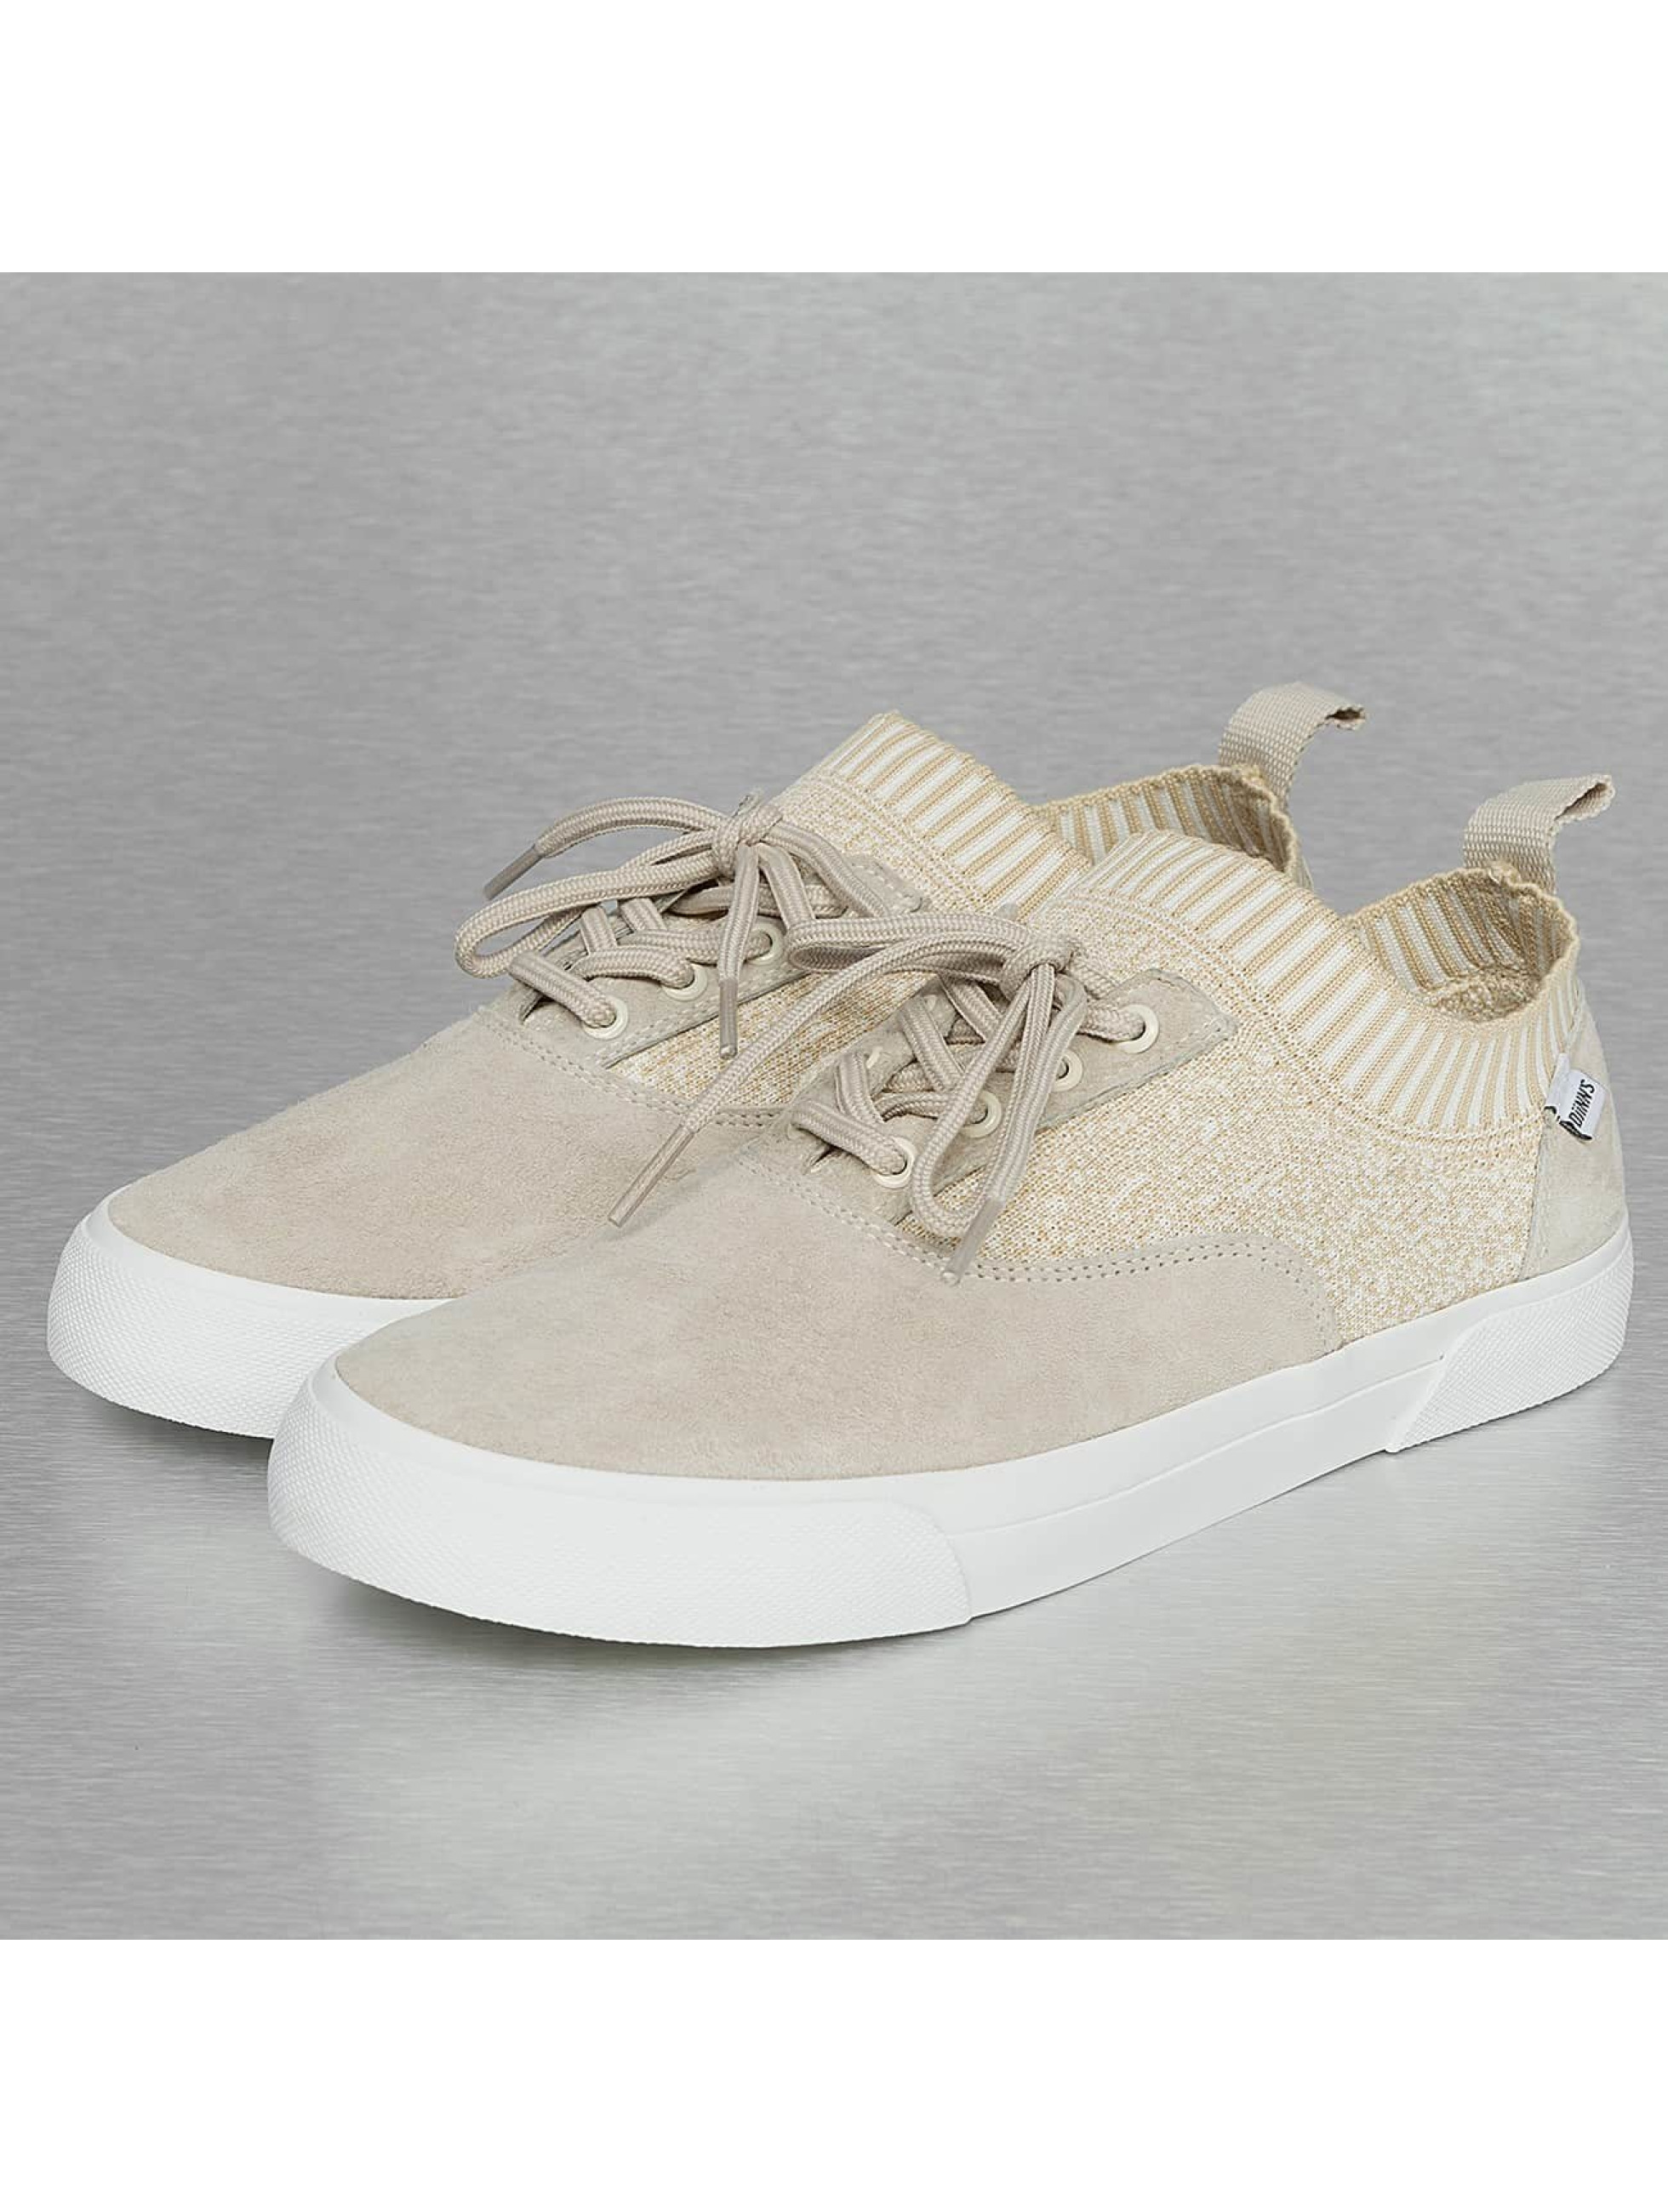 Sneaker Sub Age Soc Youname Knit in beige